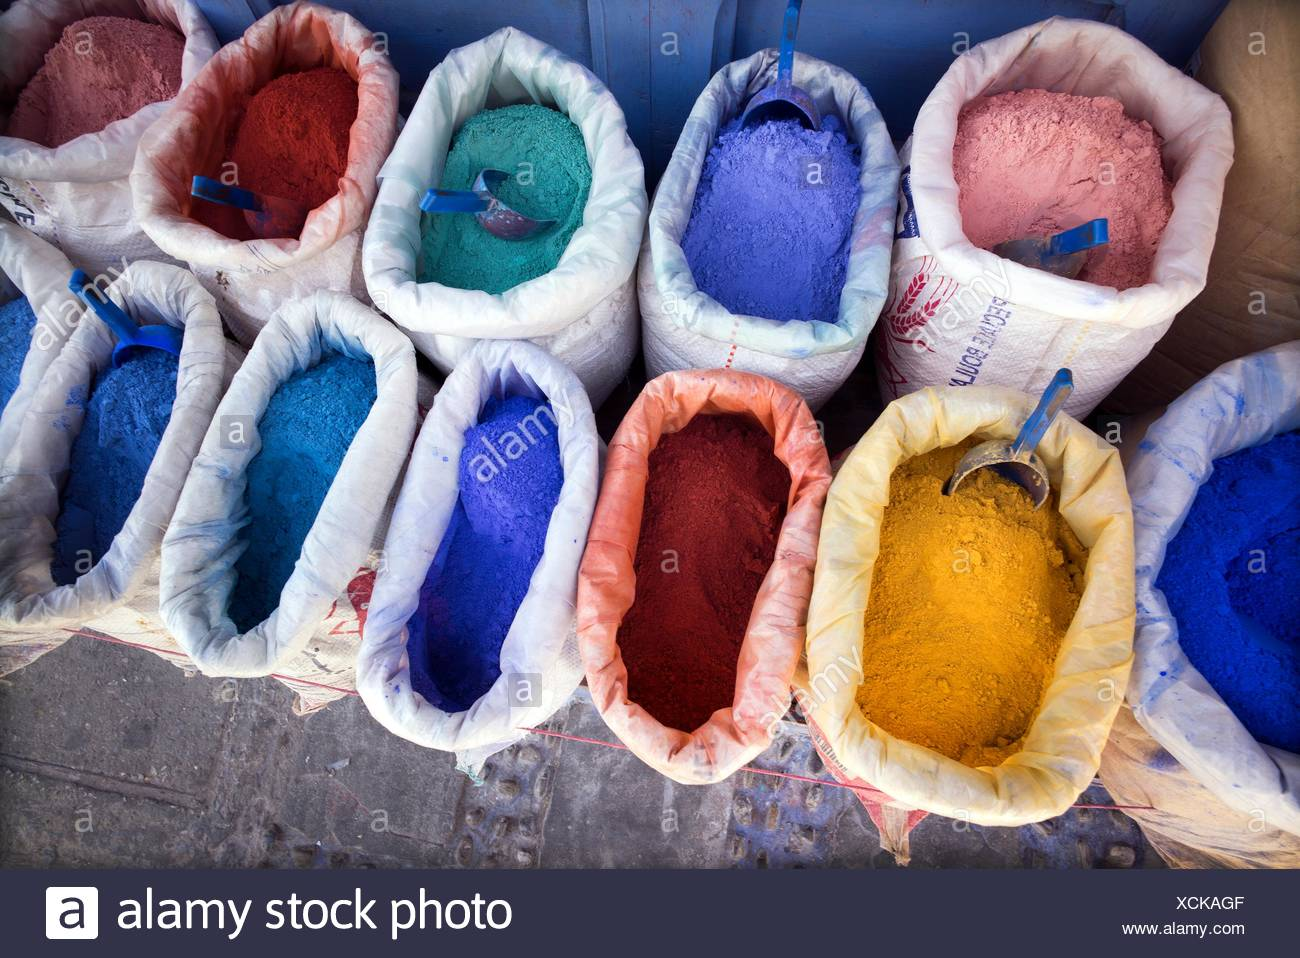 Sacks of dyes for dyeing lime and paint of different typical colors. Chaouen, Morocco - Stock Image